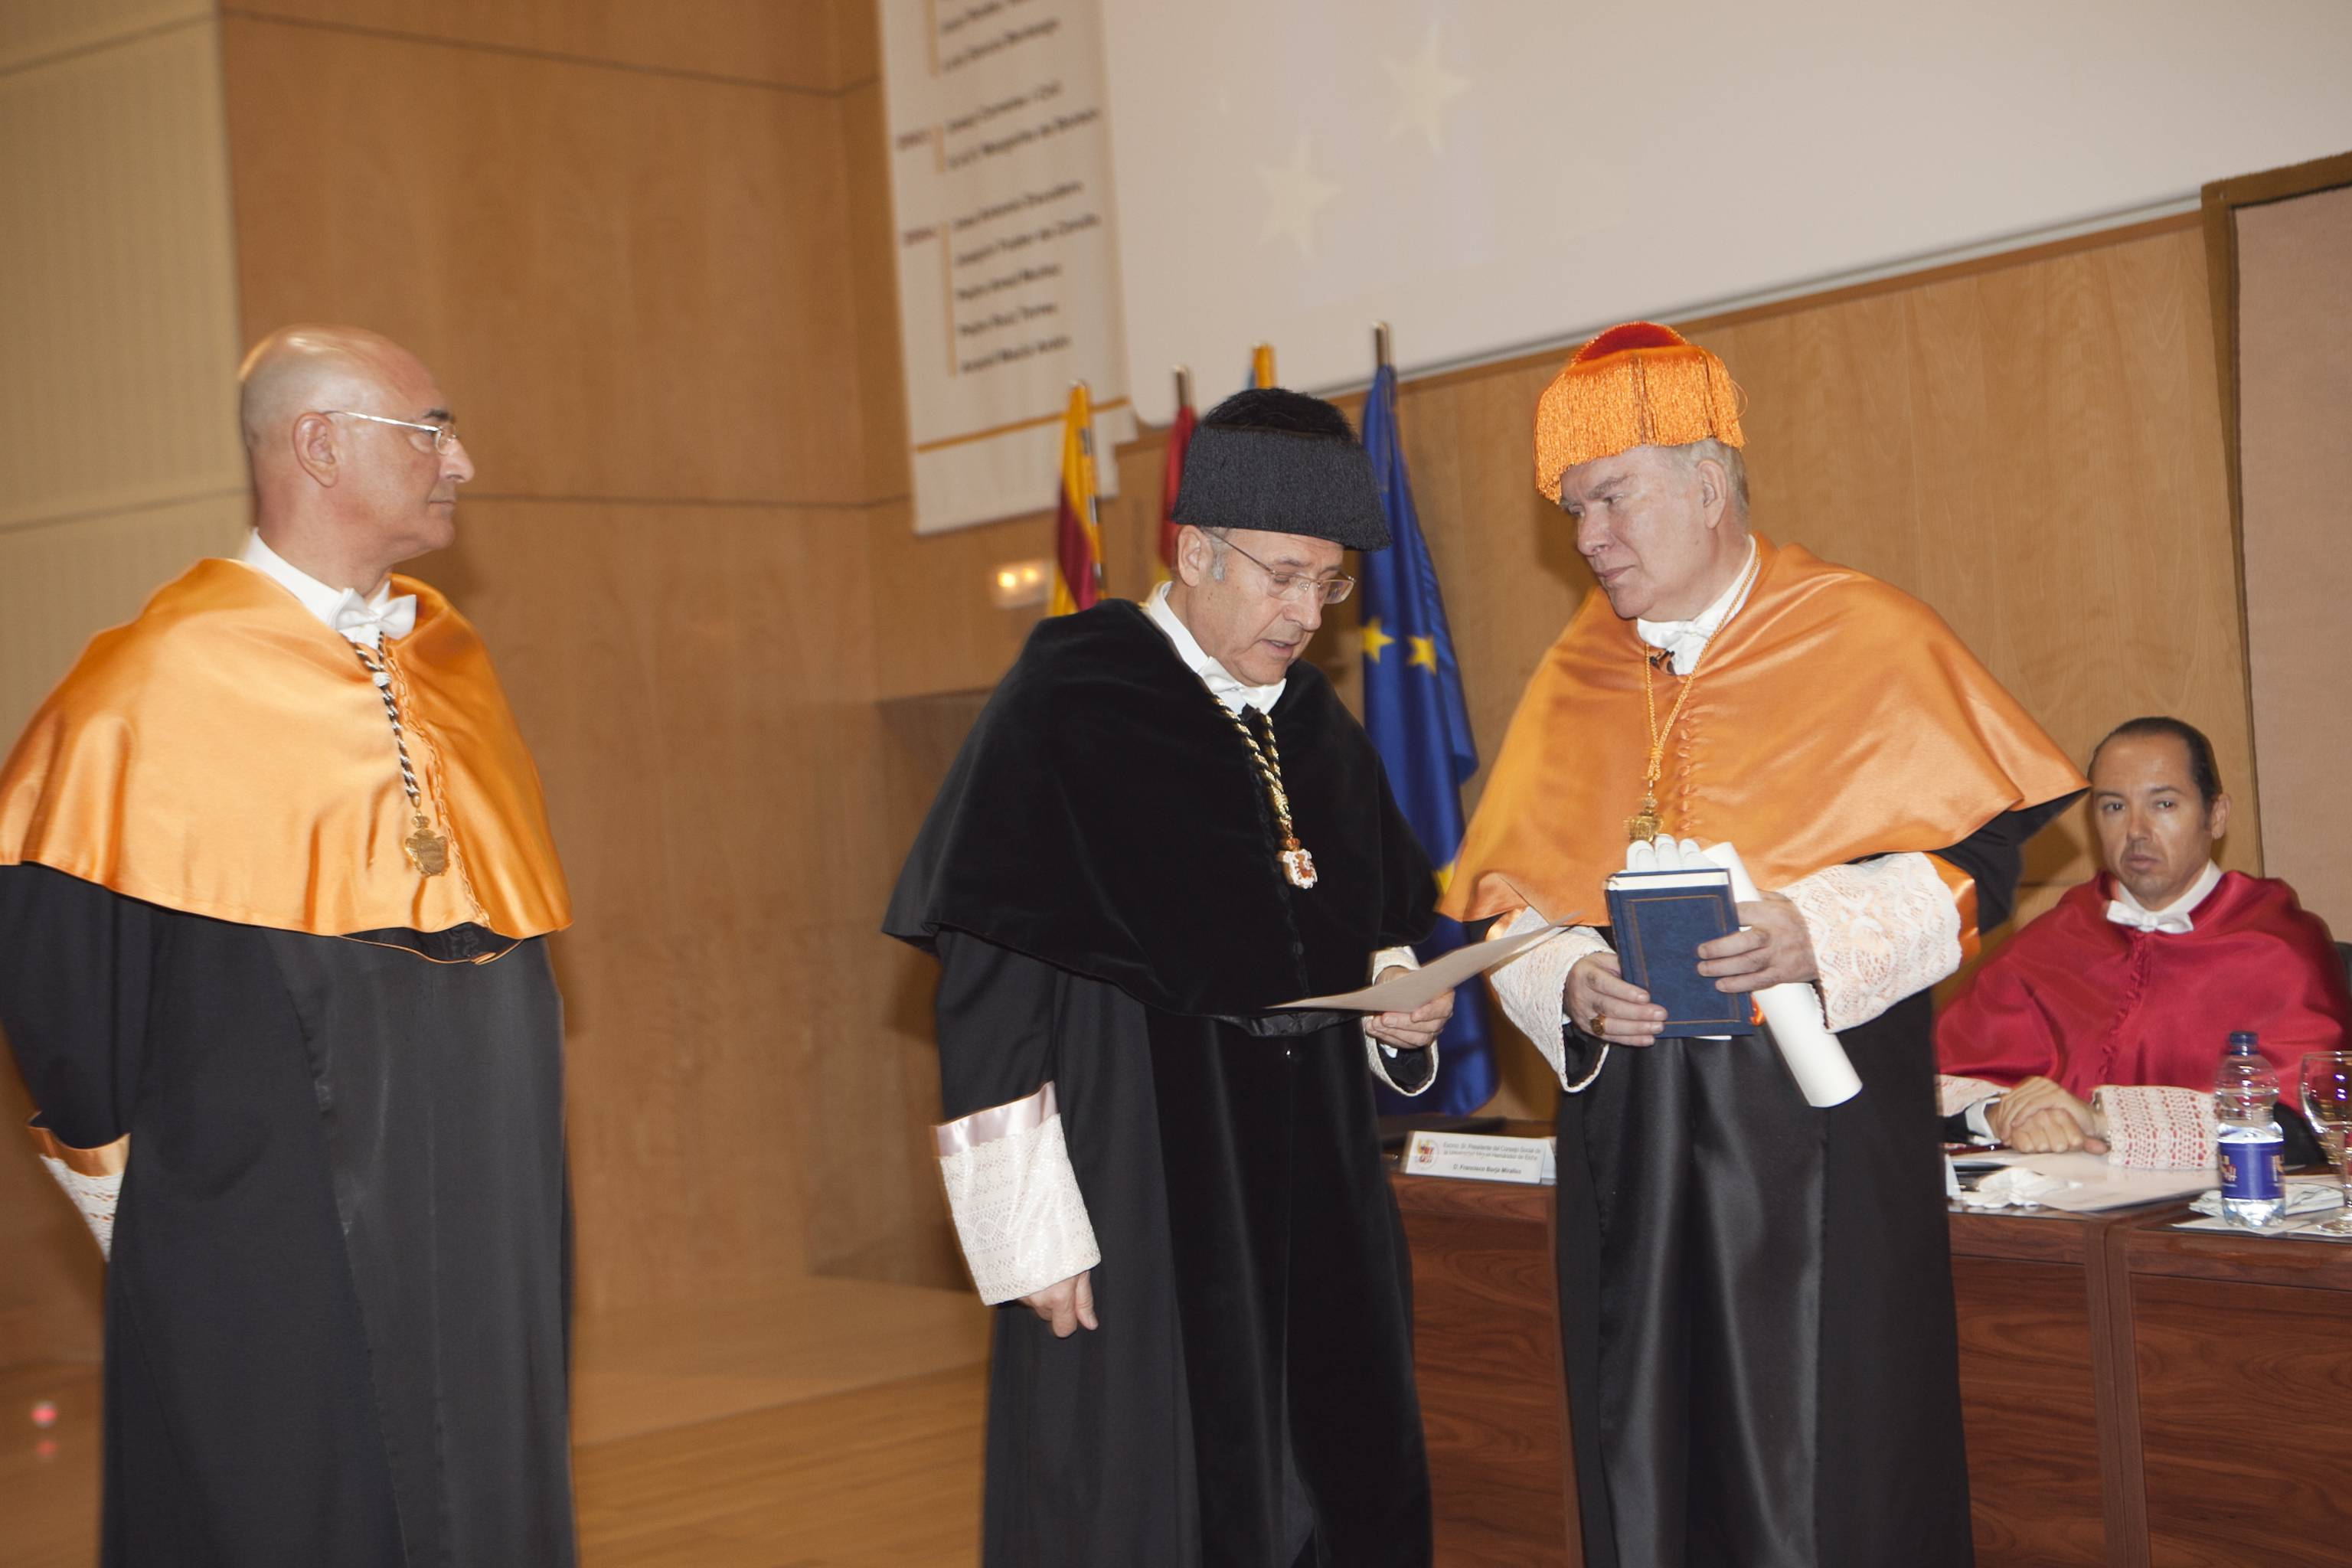 doctor-honoris-causa-luis-gamir_mg_0792.jpg